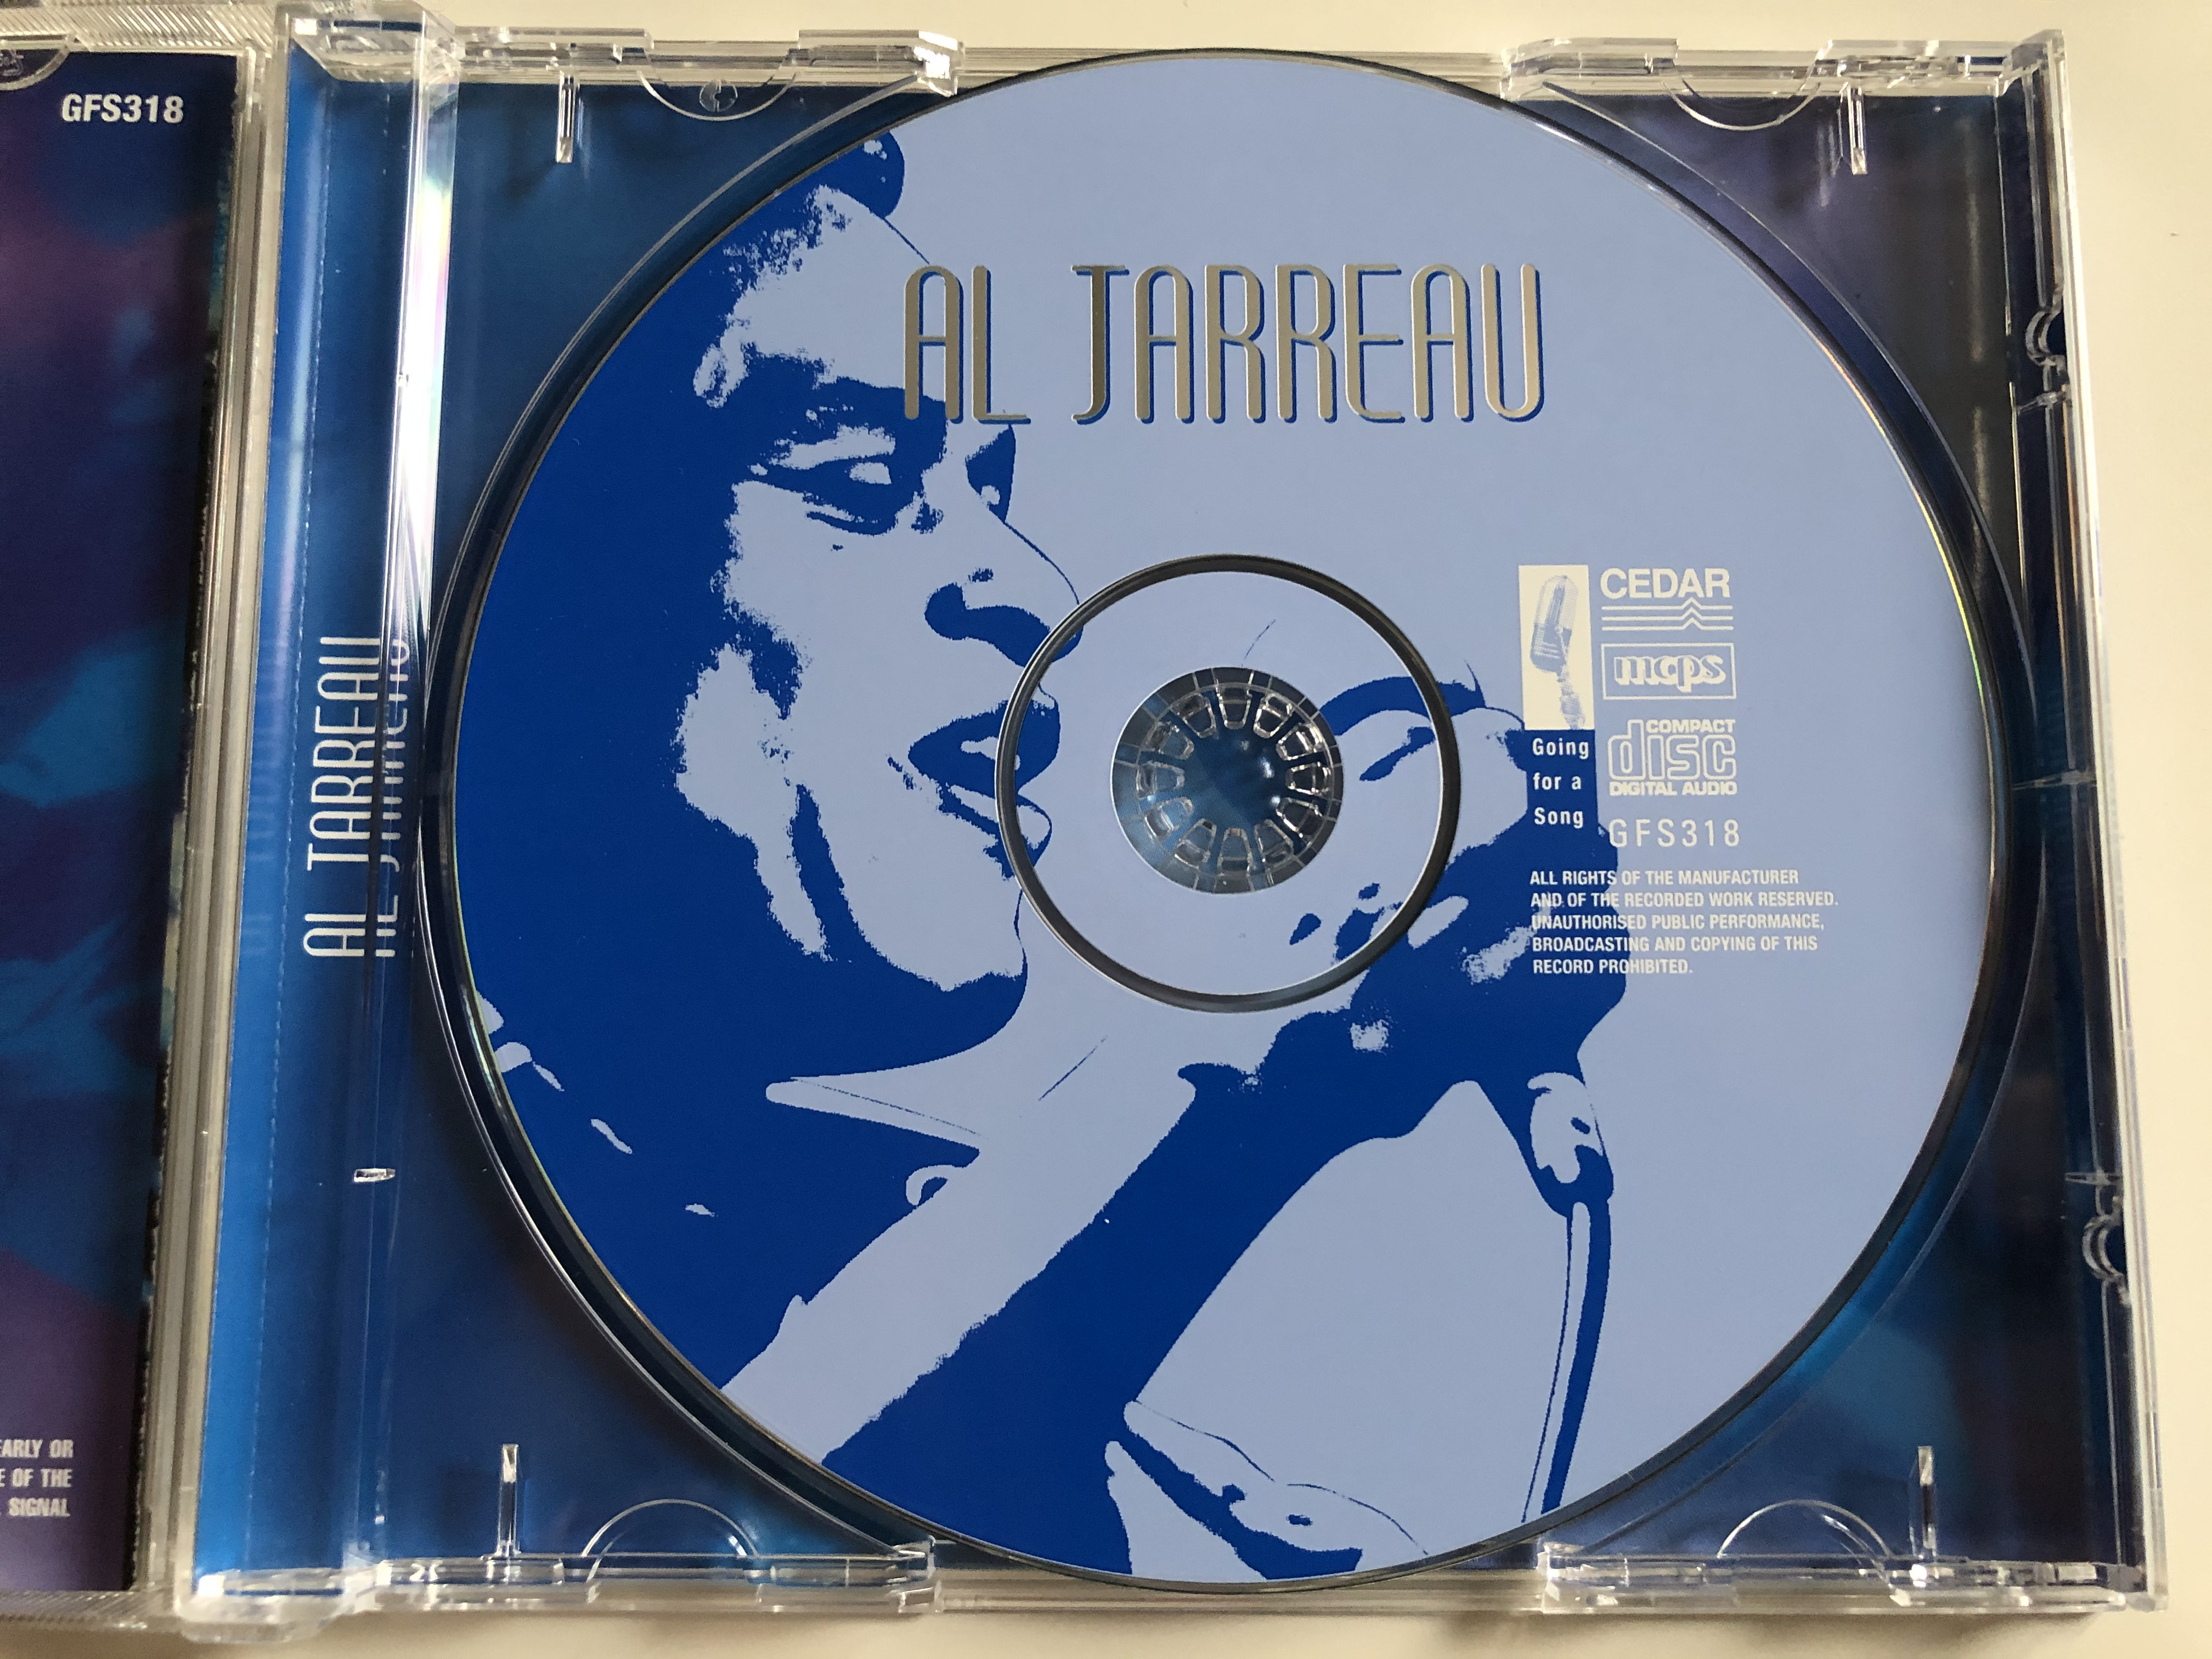 al-jarreau-featuring-ain-t-no-sunshine-come-rain-or-come-shine-lean-on-me-let-s-stay-together-and-many-more-going-for-a-song-audio-cd-gfs318-4-.jpg